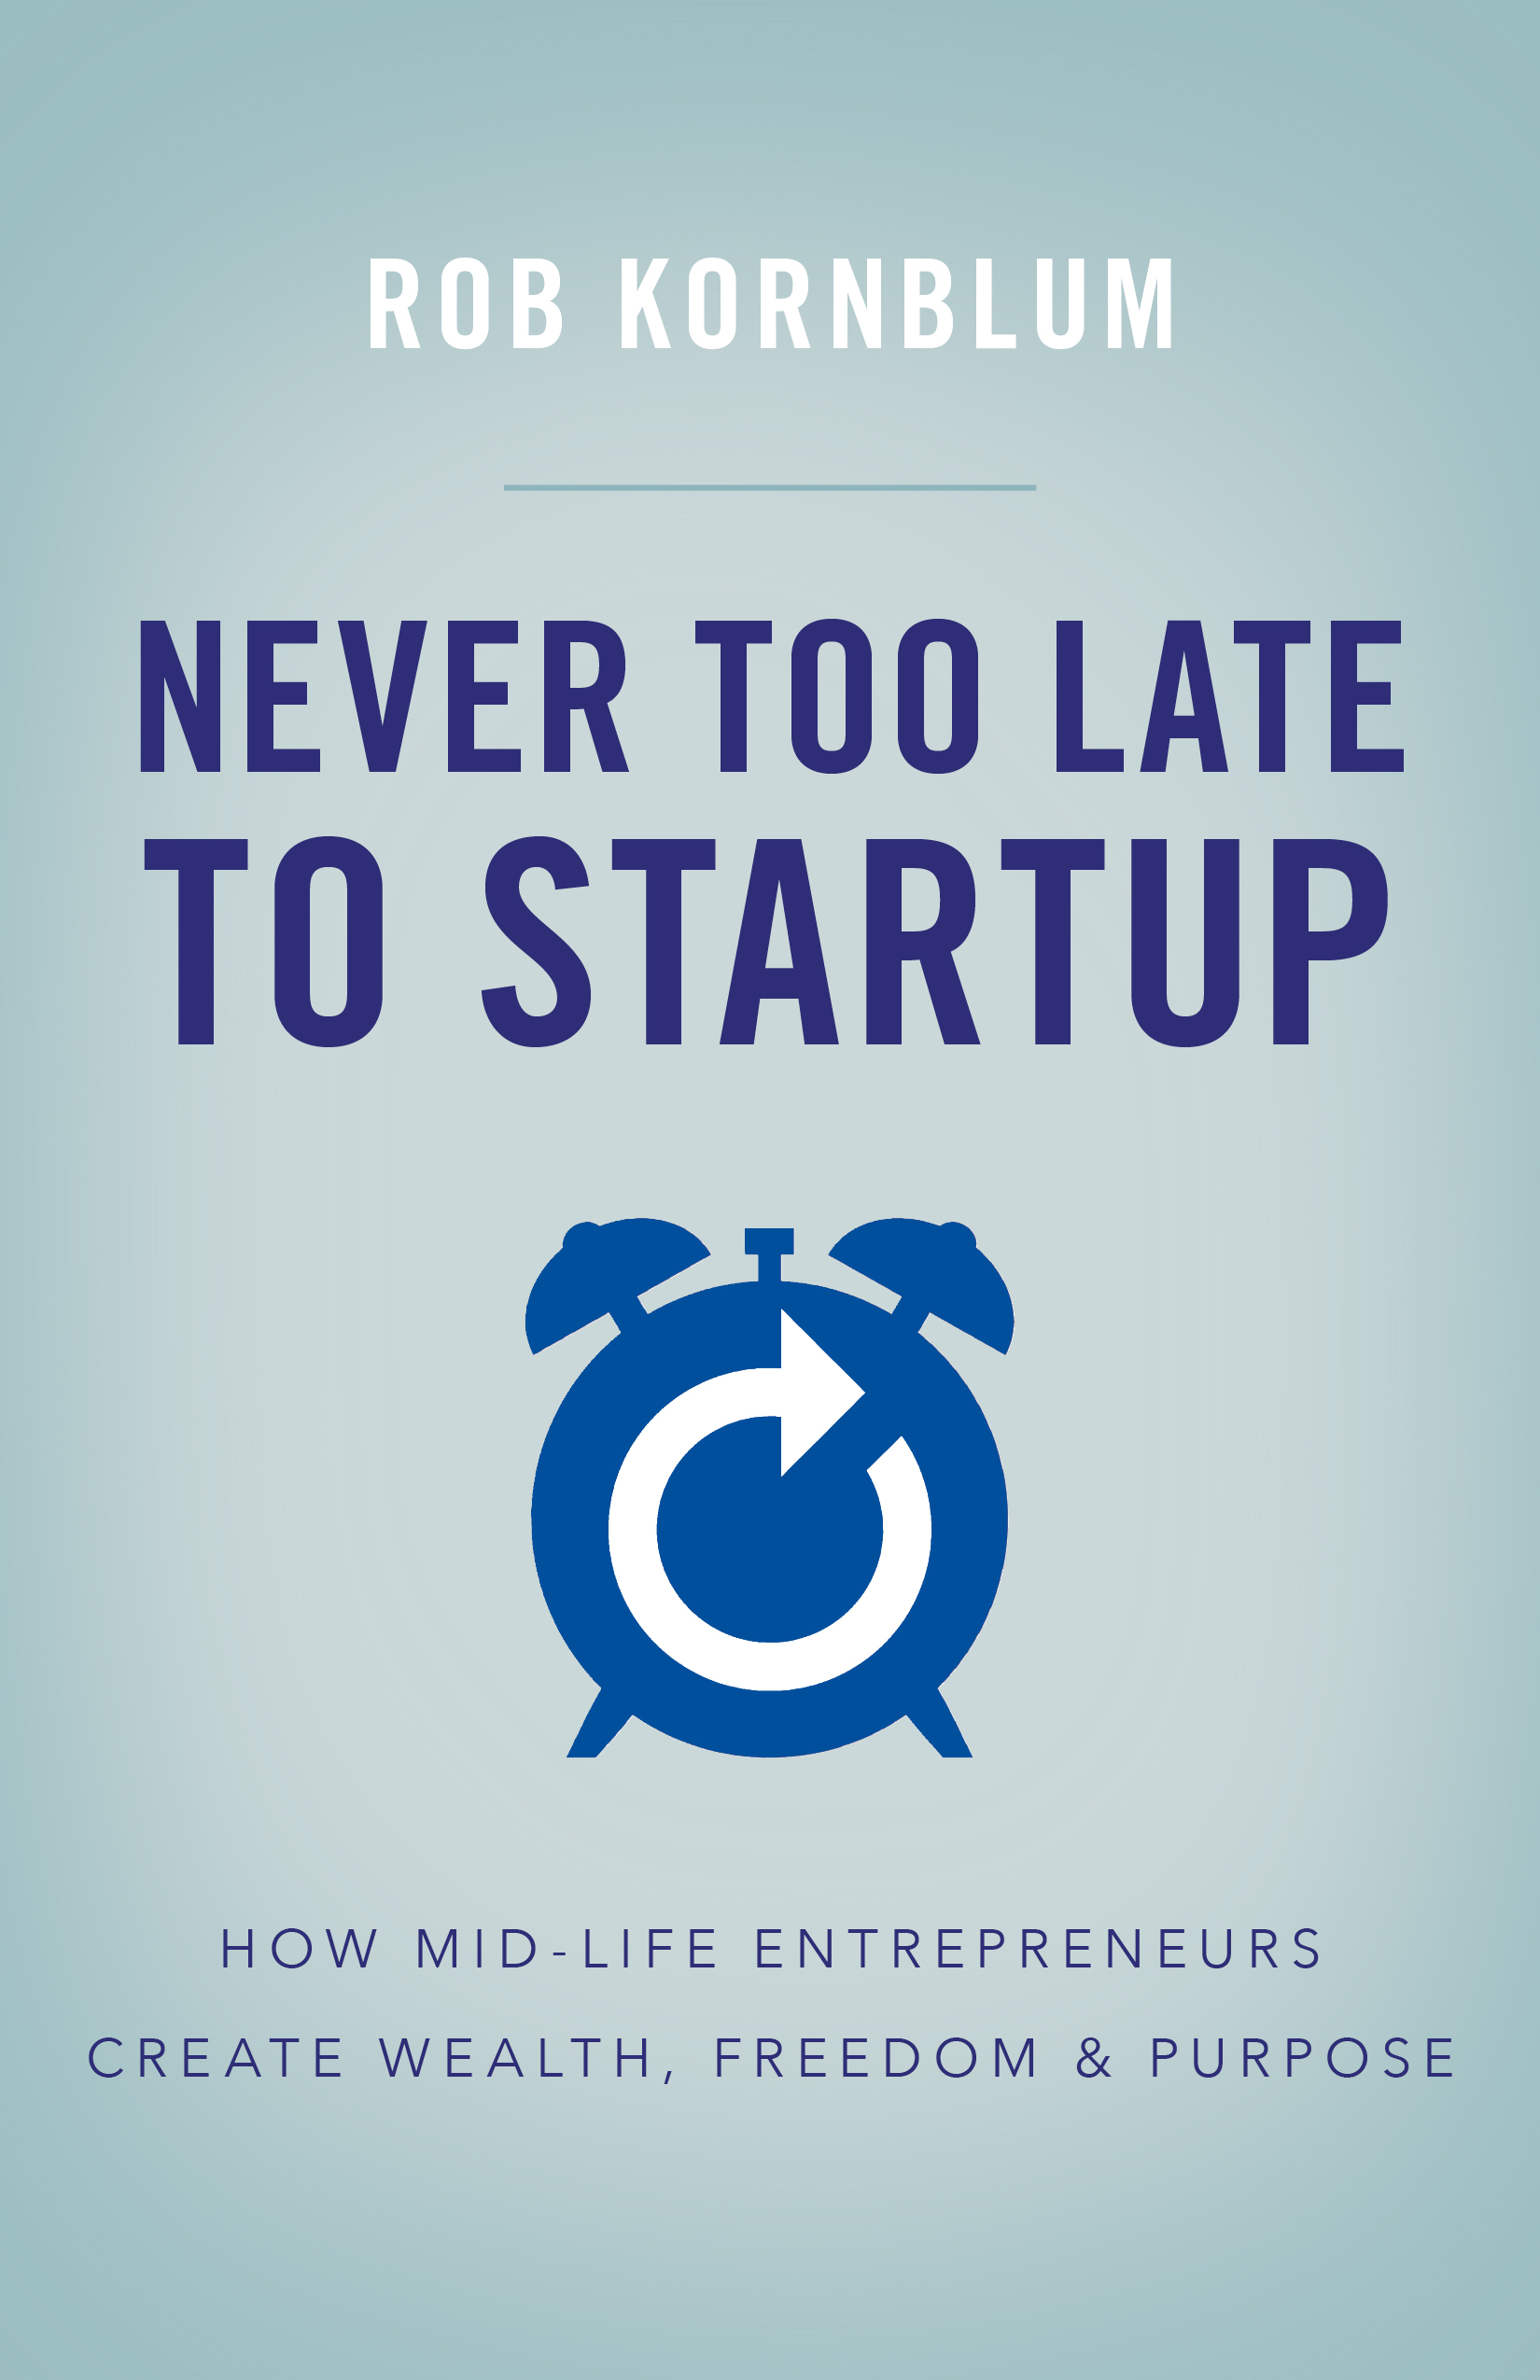 never-too-late-to-startup-rob-kornblum